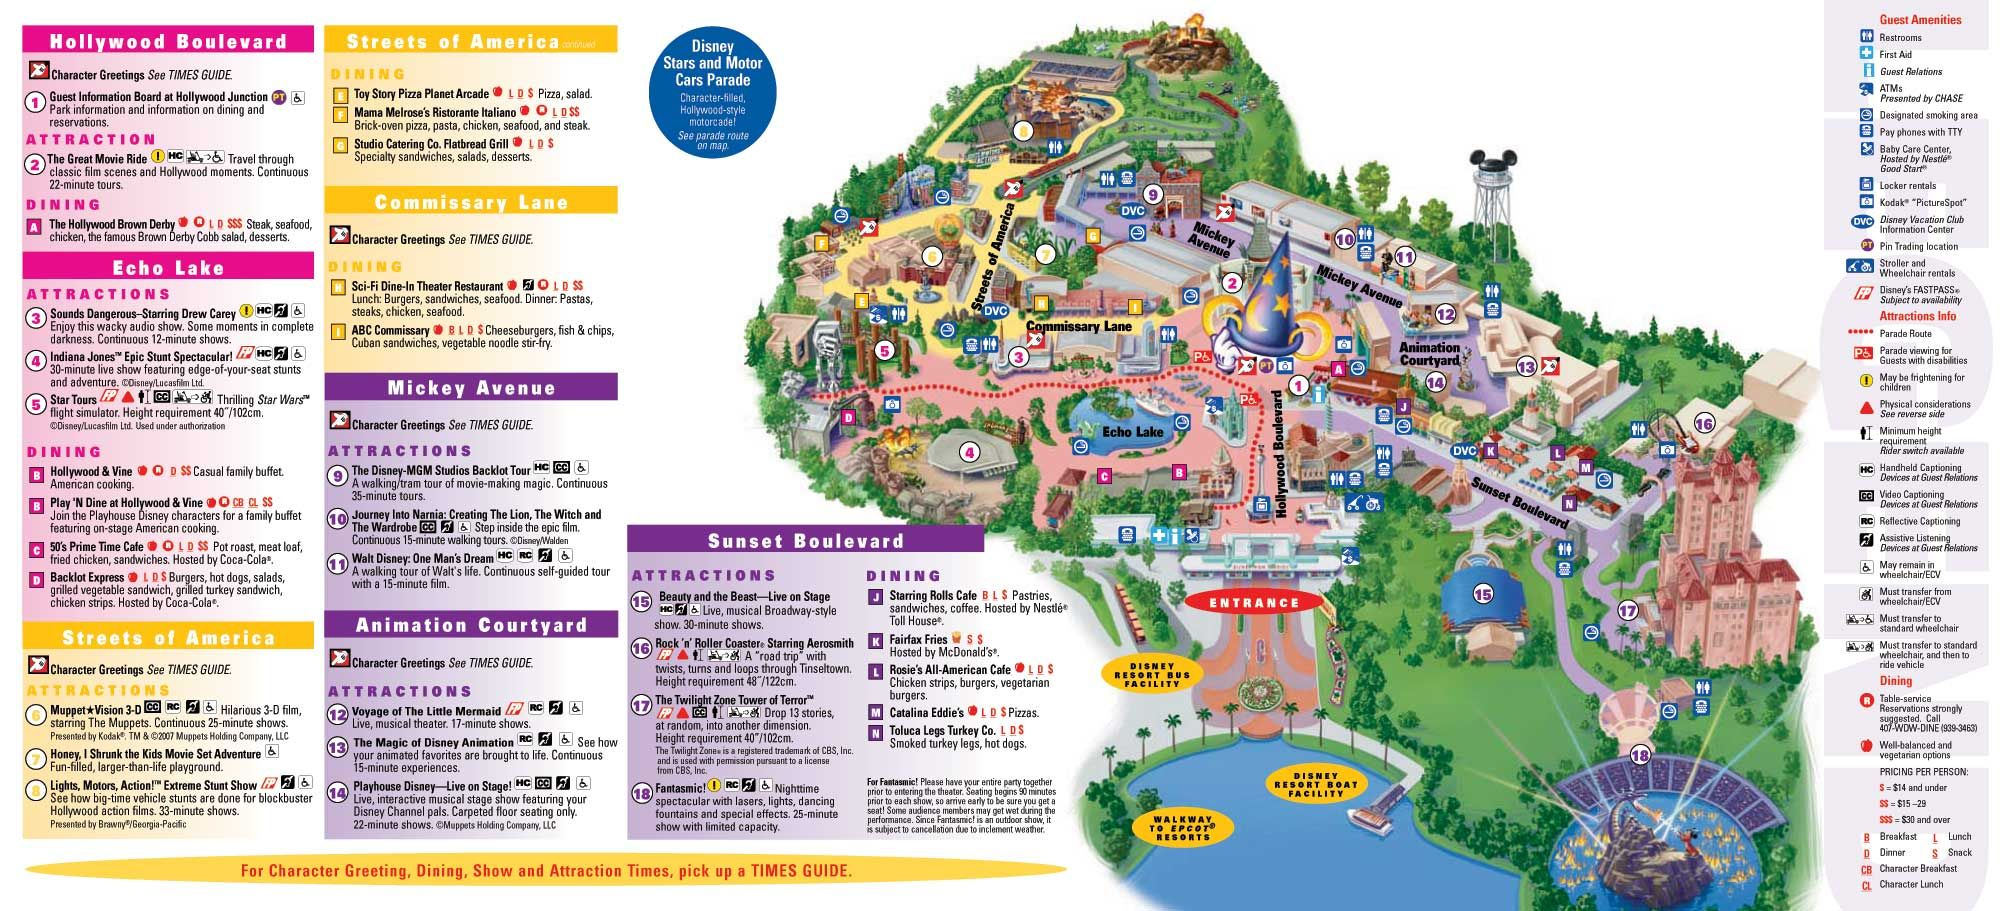 Hollywood Studios / MGM Studios Orlando 2012 Map | Disney World ...